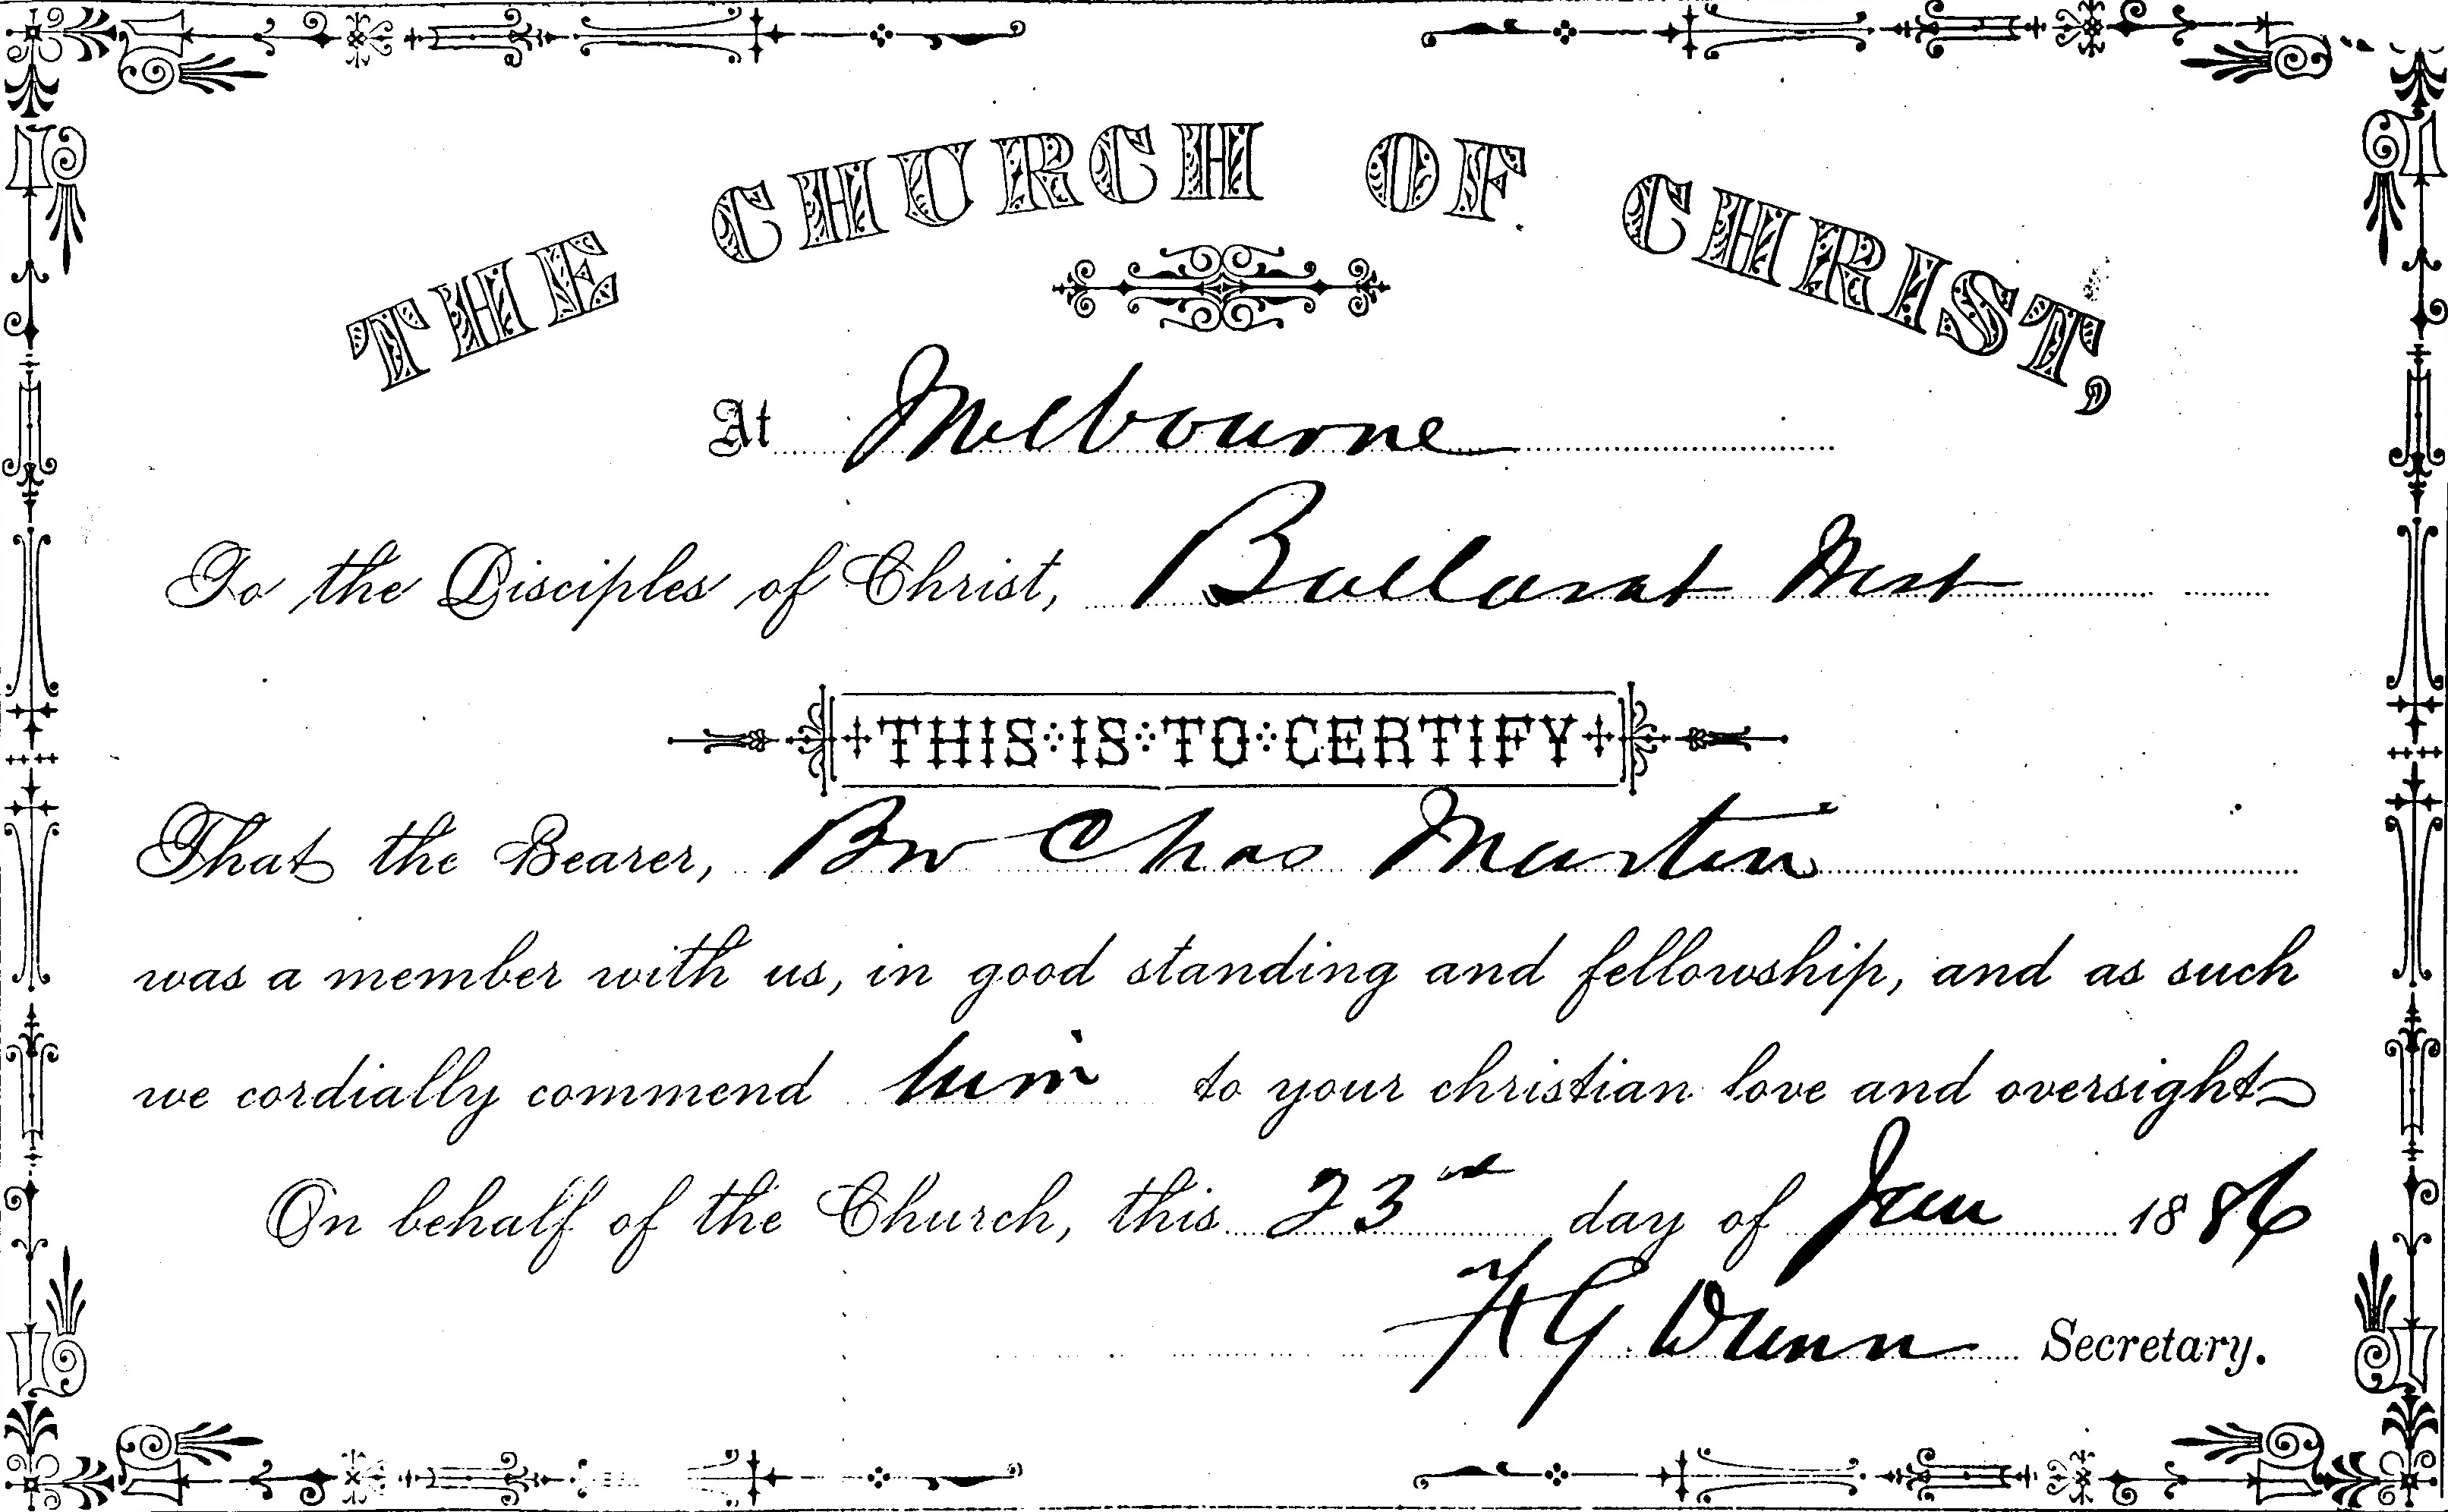 1886 church of christ intro letter to ballarat thecheapjerseys Images